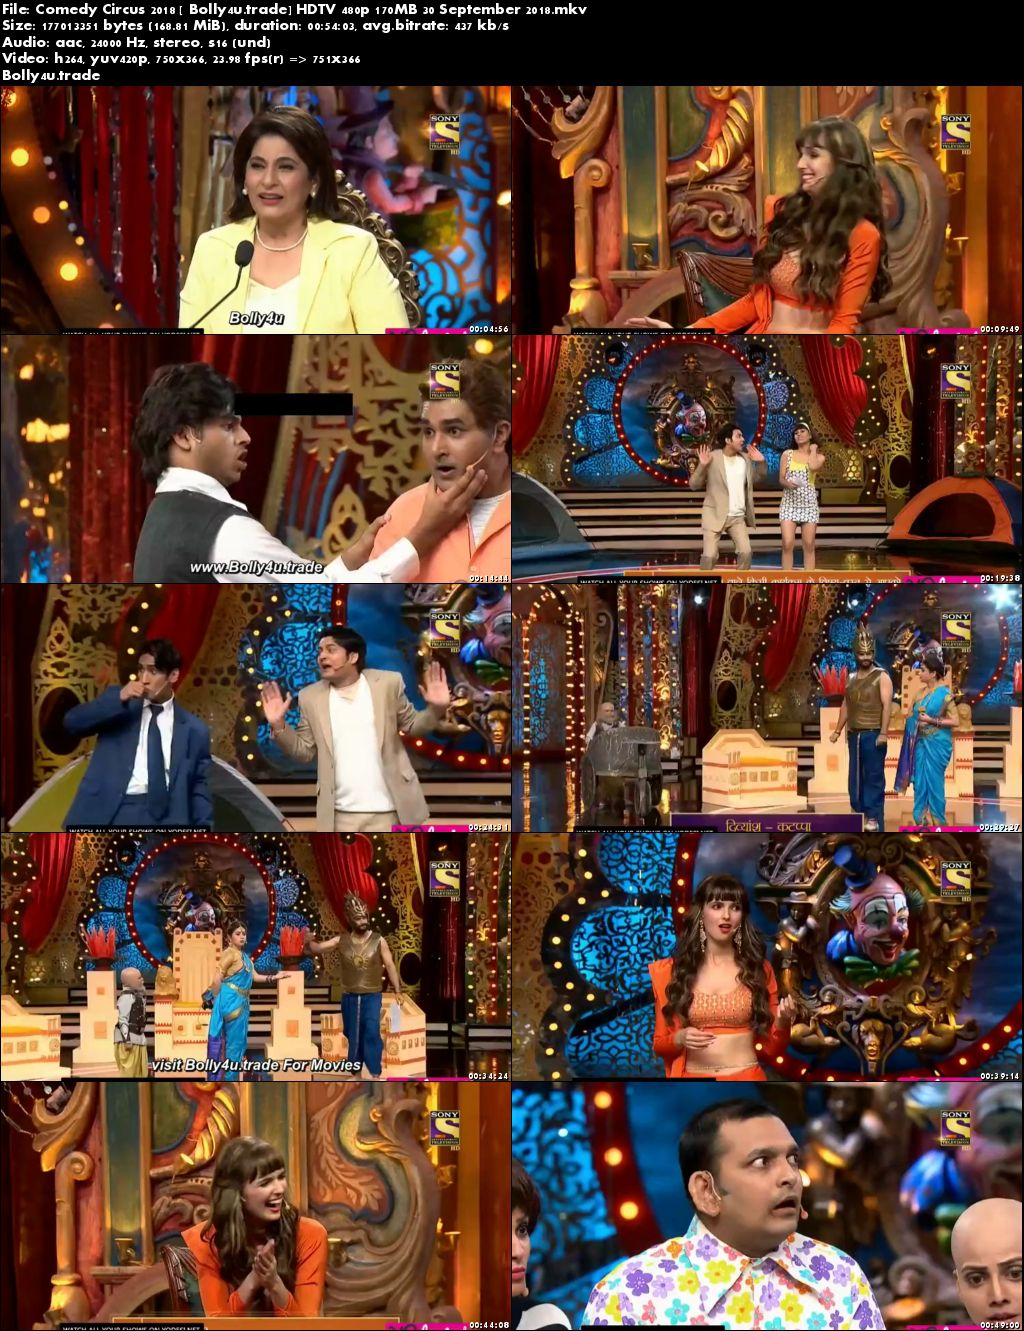 Comedy Circus 2018 HDTV 480p 170MB 30 September 2018 Download